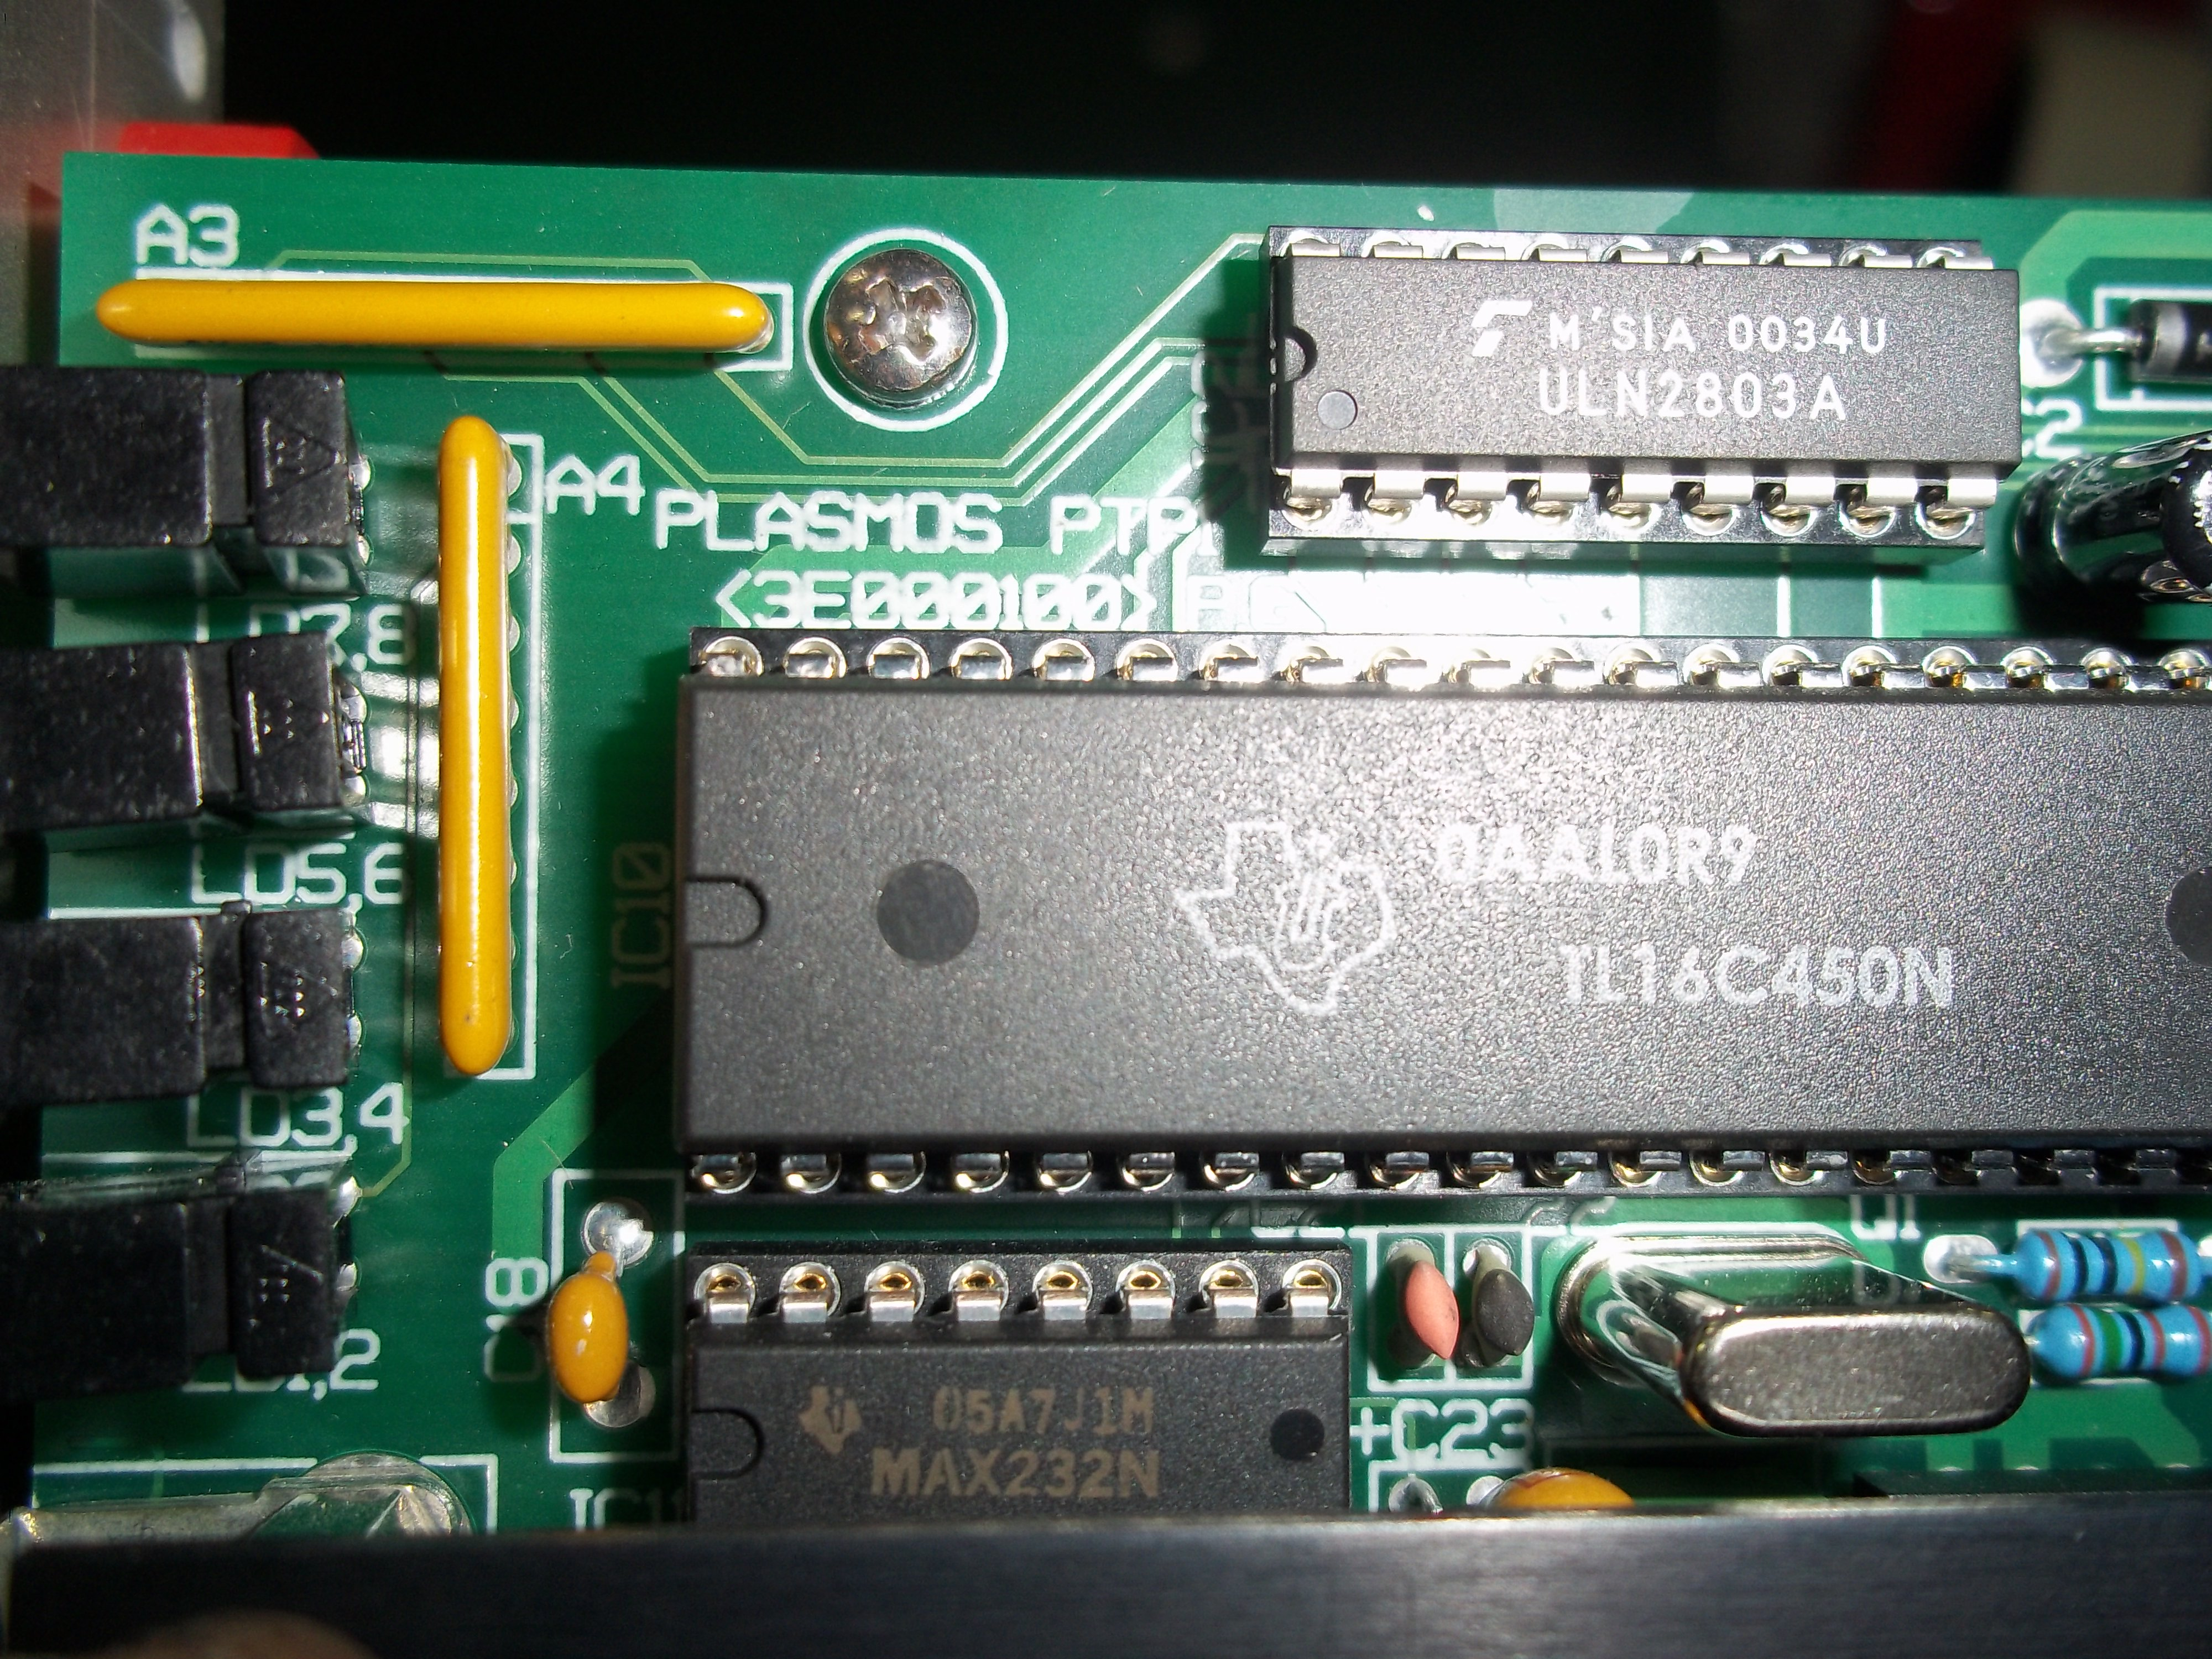 Repair PPZ2 EVCO PCB BOARD in Malaysia, Singapore, Thailand, Indonesia